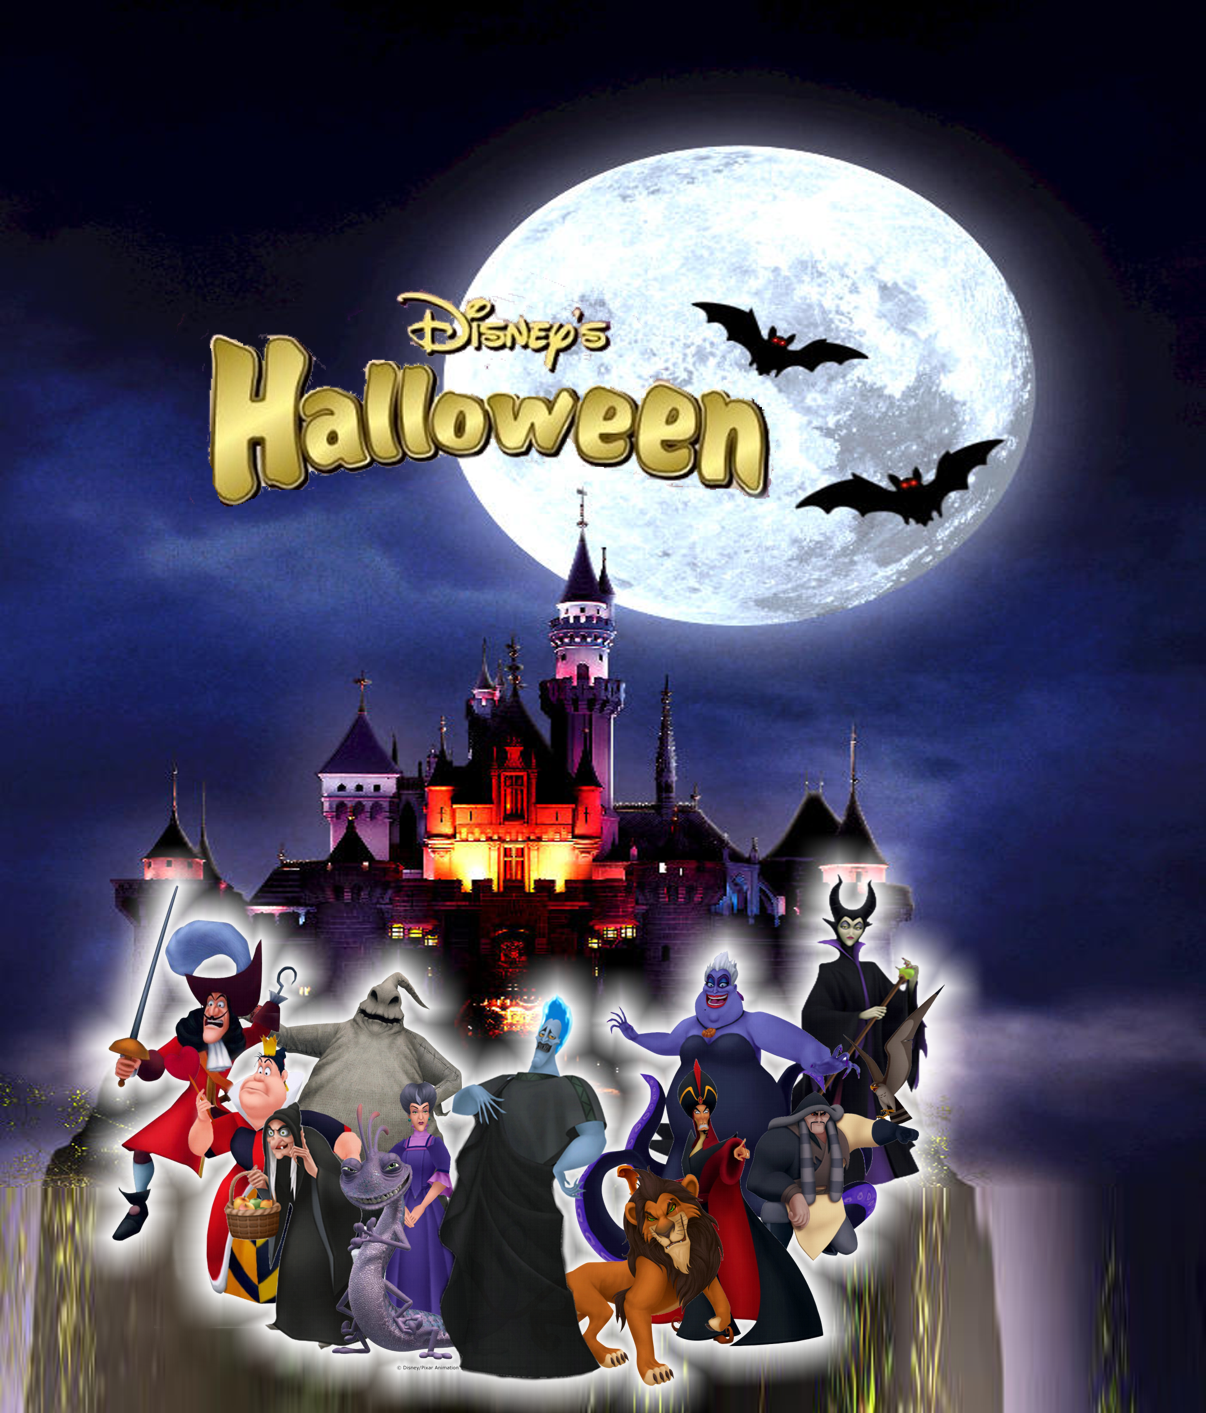 Image - Disney's Halloween of The Villains.png | Disney Wiki ...